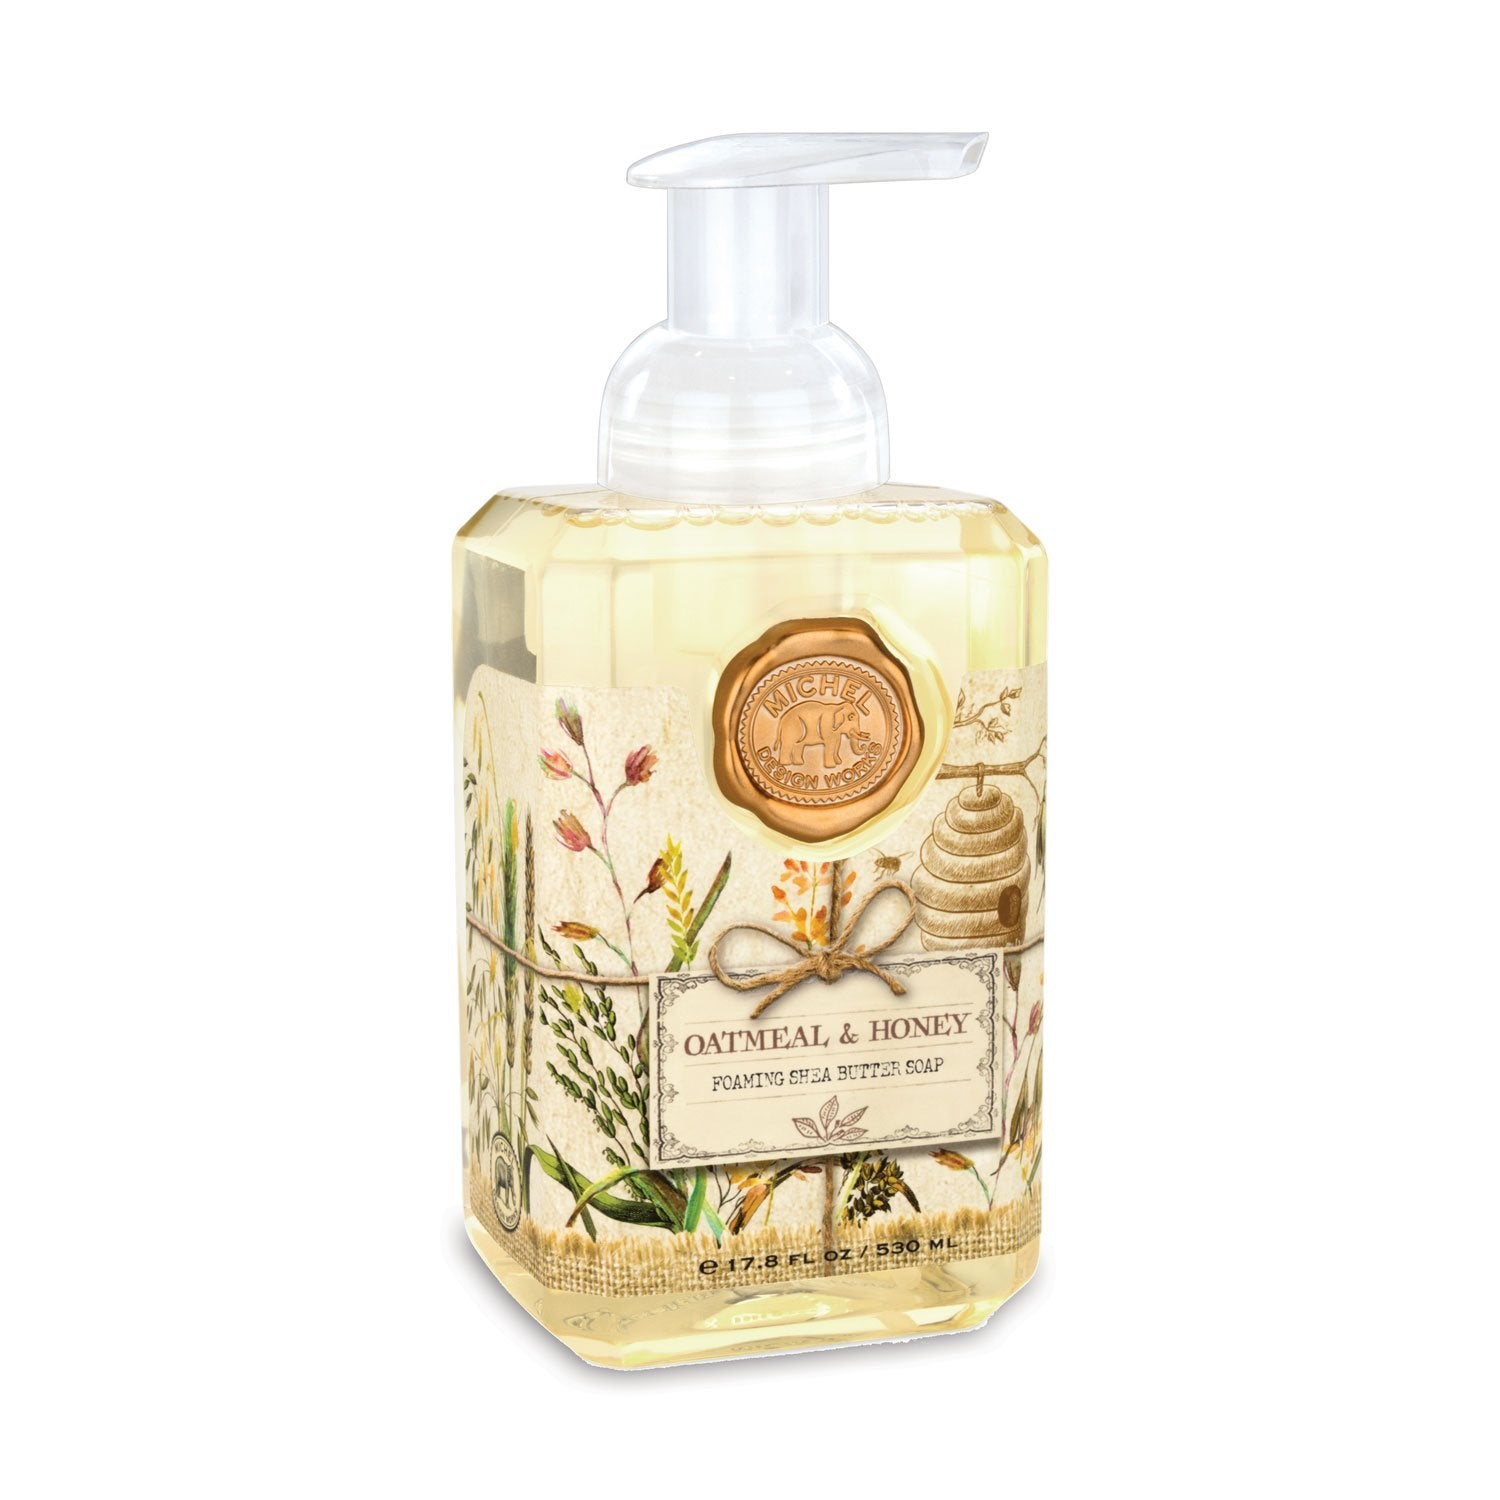 Oatmeal & Honey Foaming Hand Soap